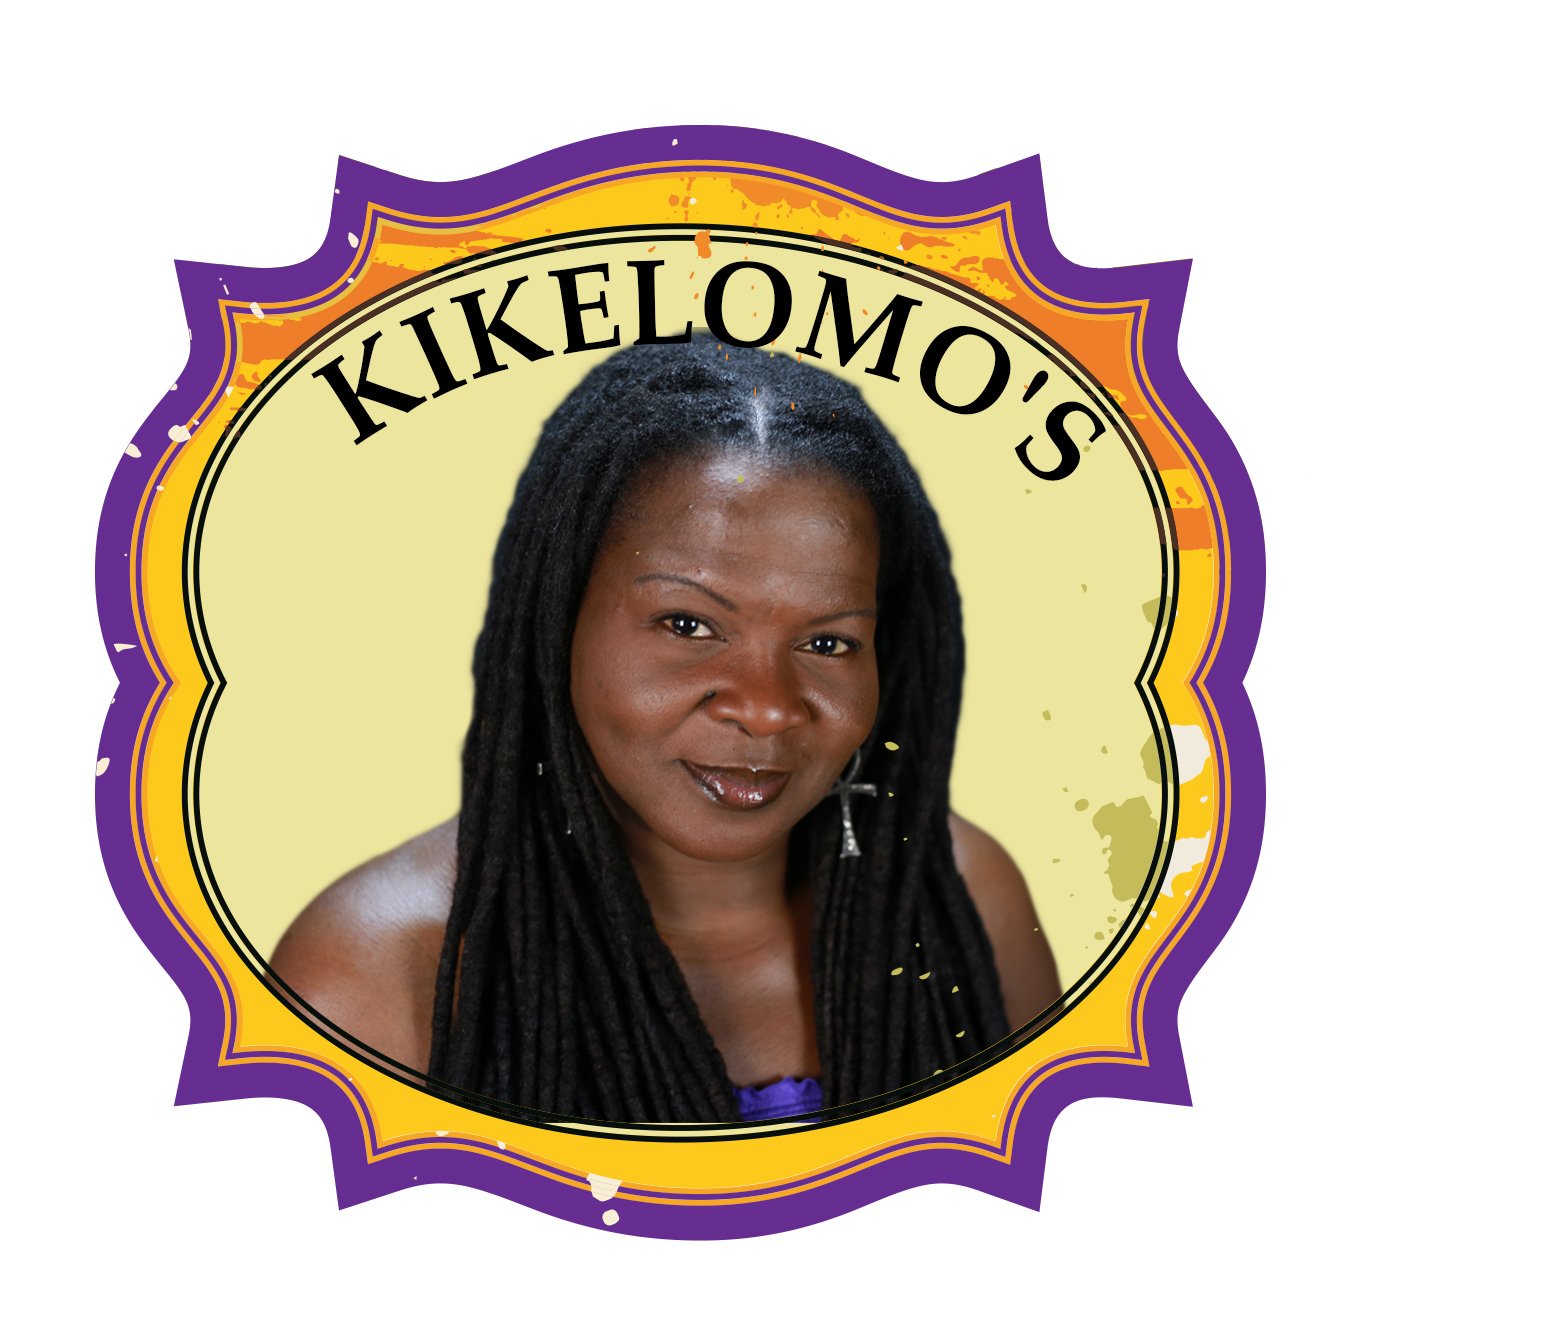 KIKELOMO'S EXCLUSIVE PRODUCT LINE